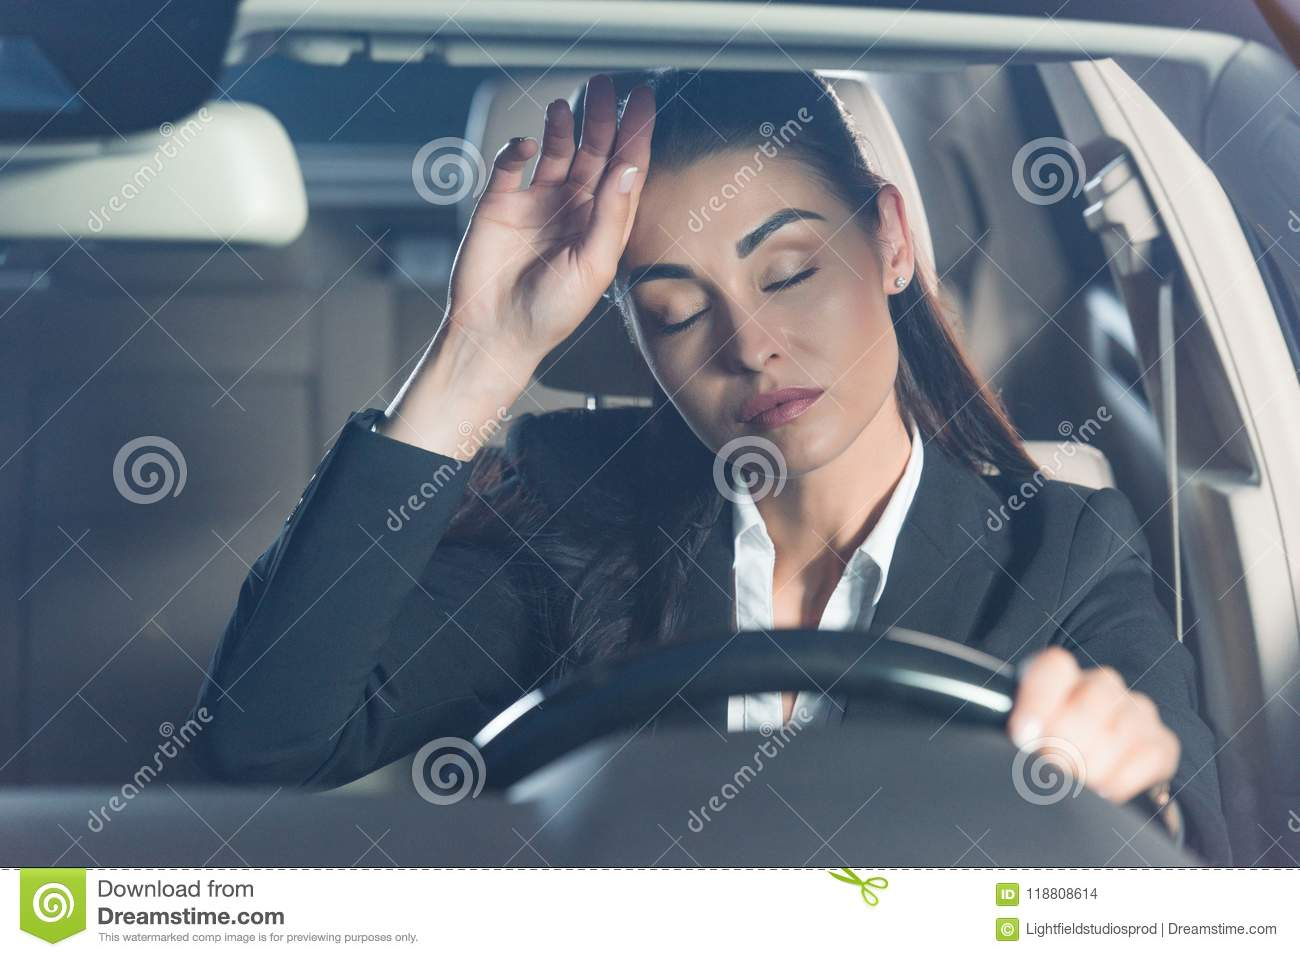 Young tired woman in suit sitting in driver seat and touching